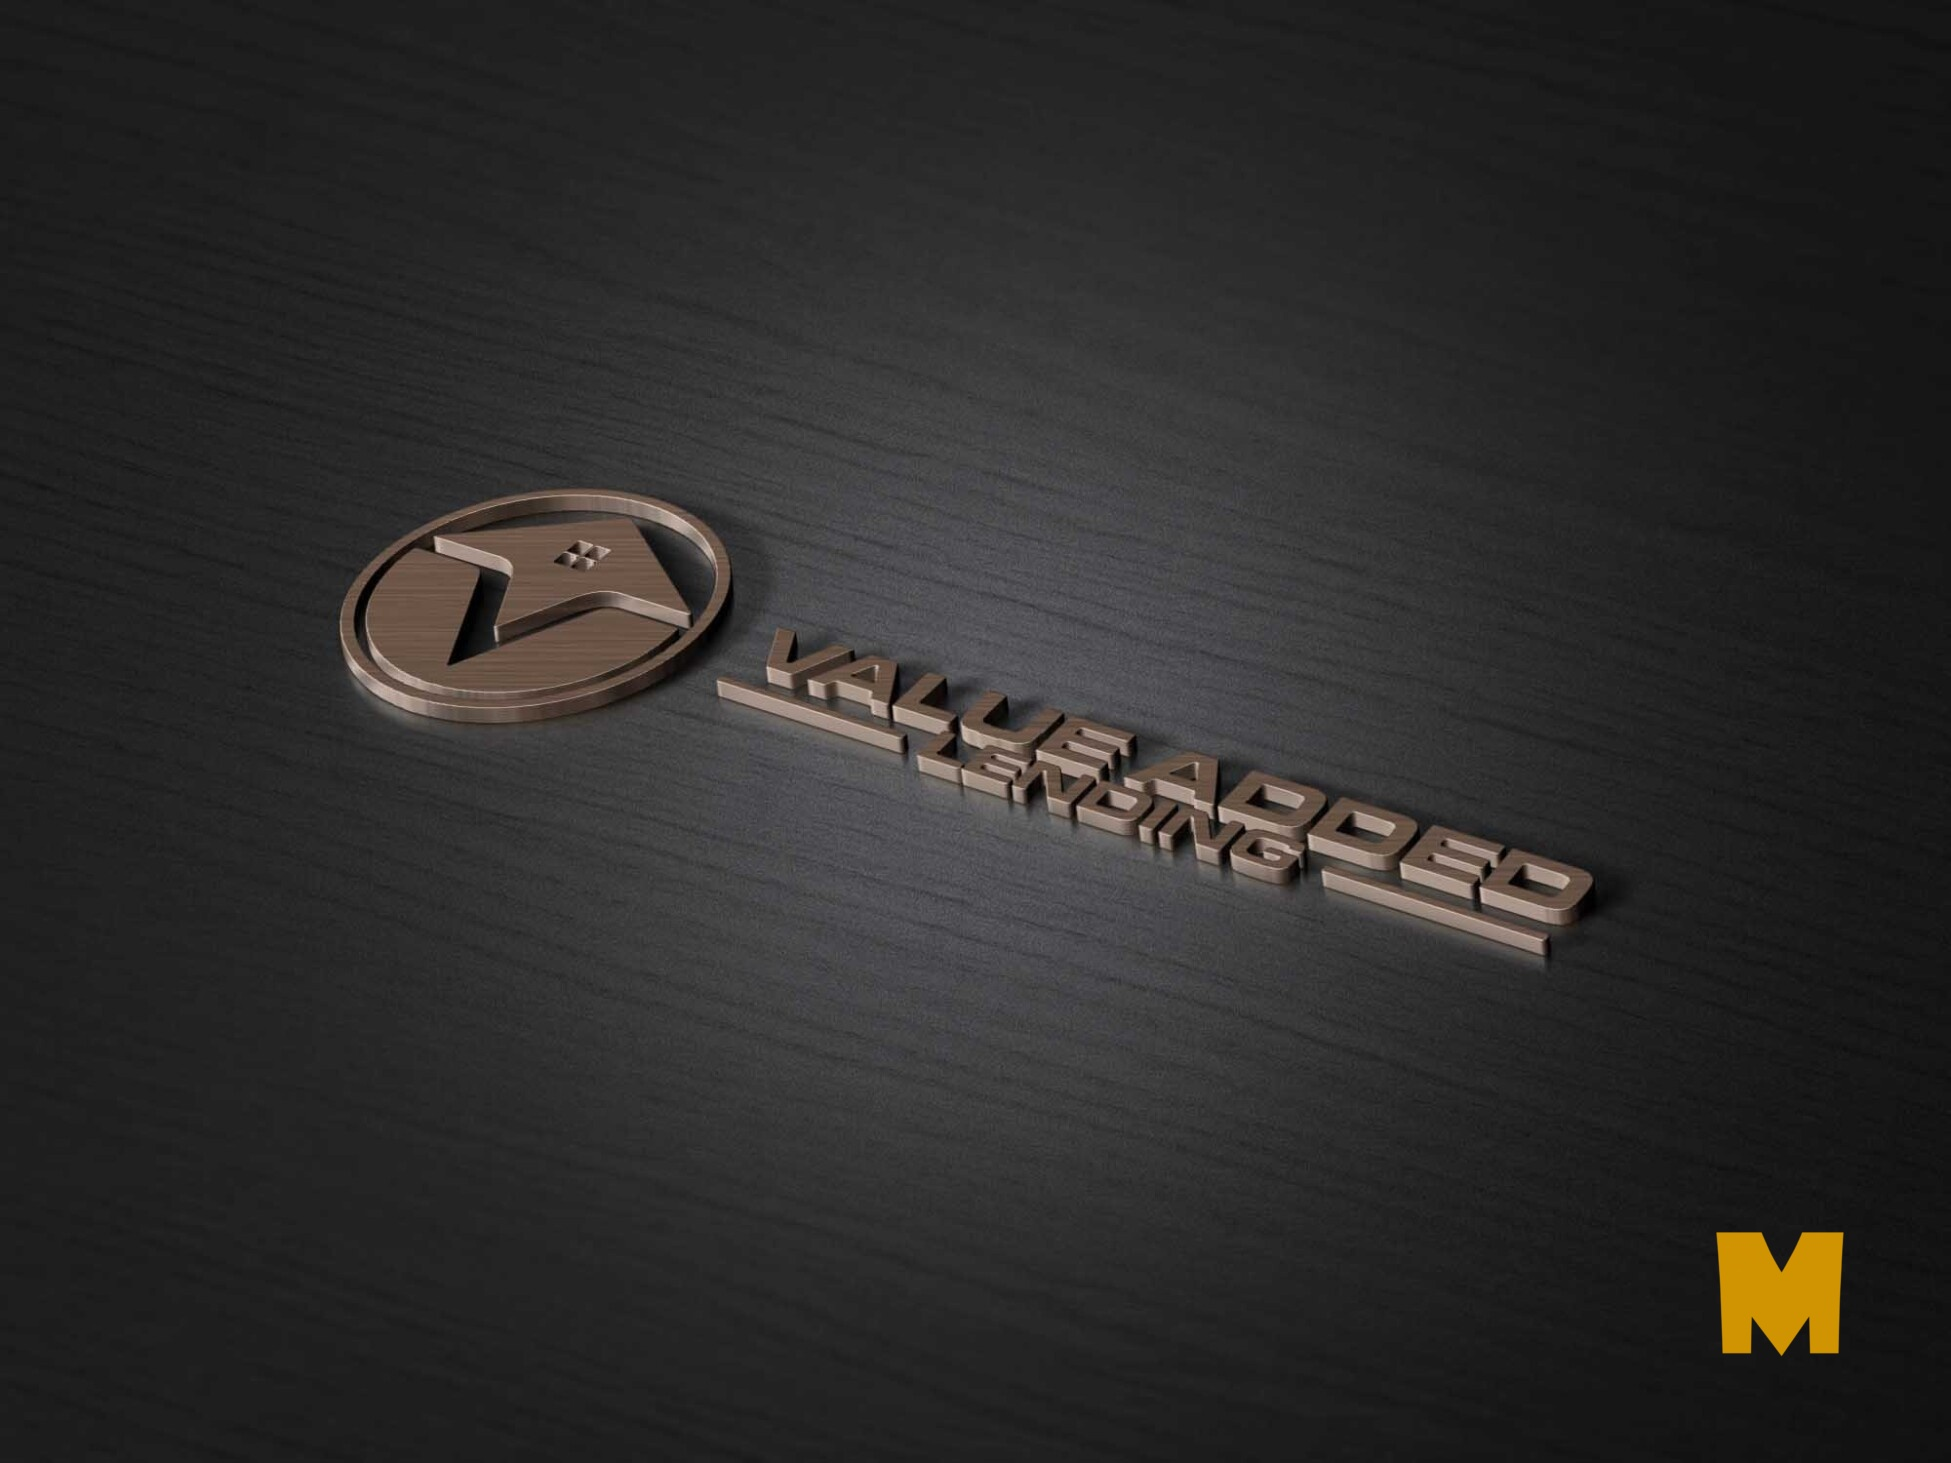 Awesome 3D copper logo mockup